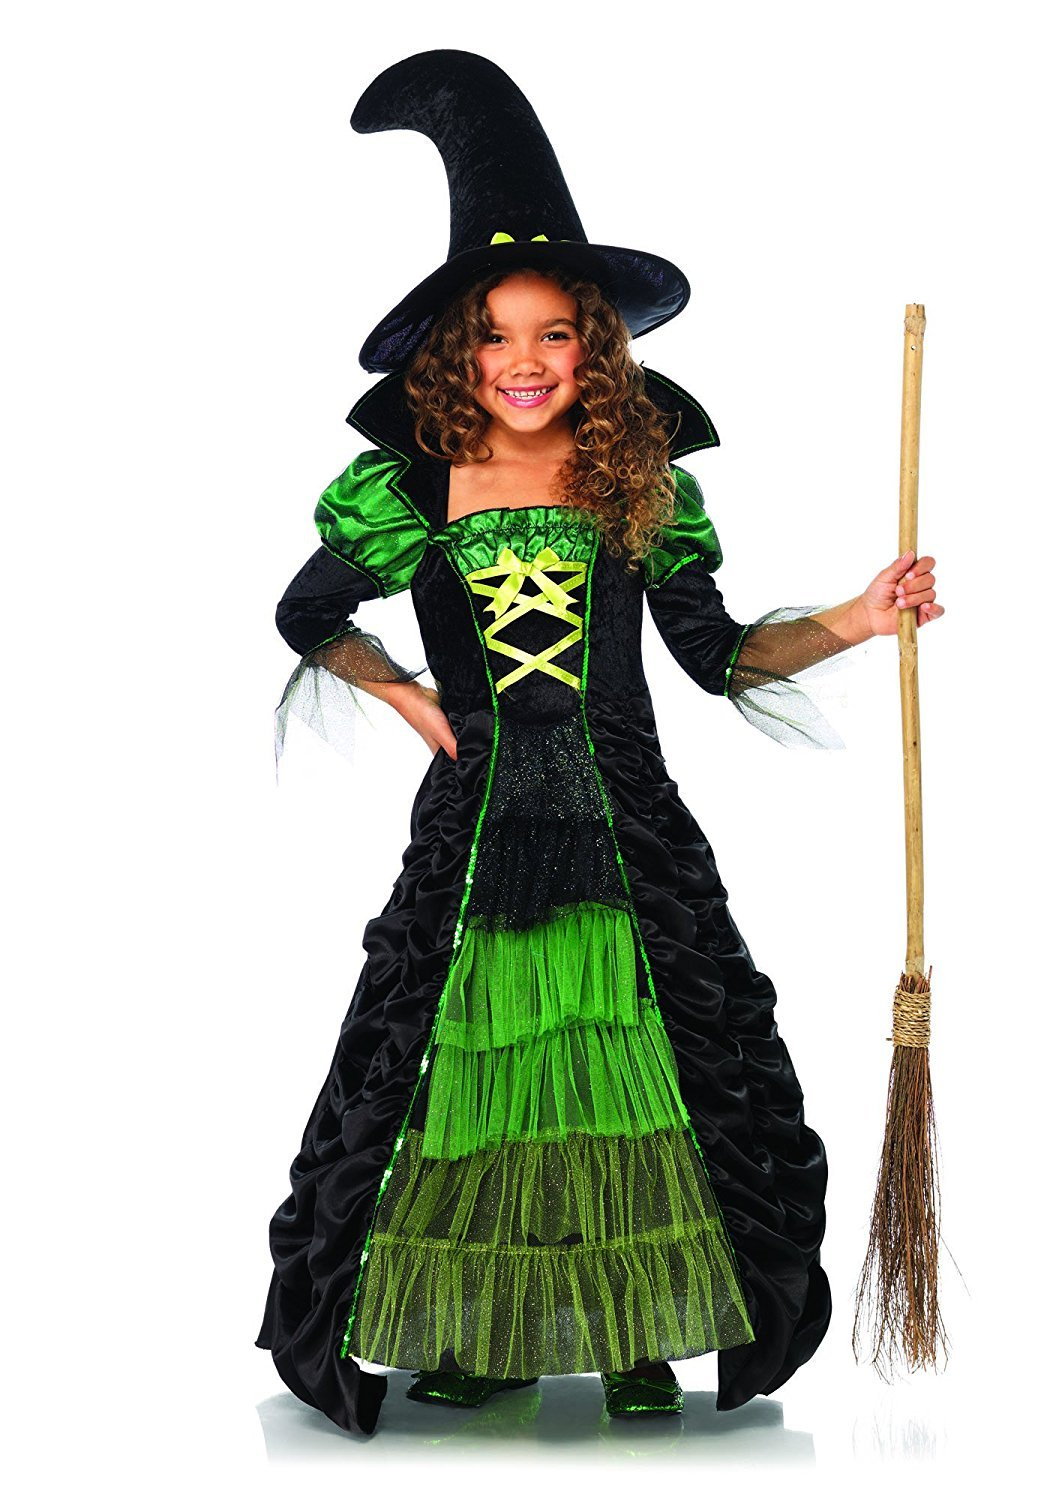 Amazon.com: Leg Avenue Children's Storybook Witch Costume: Toys ...